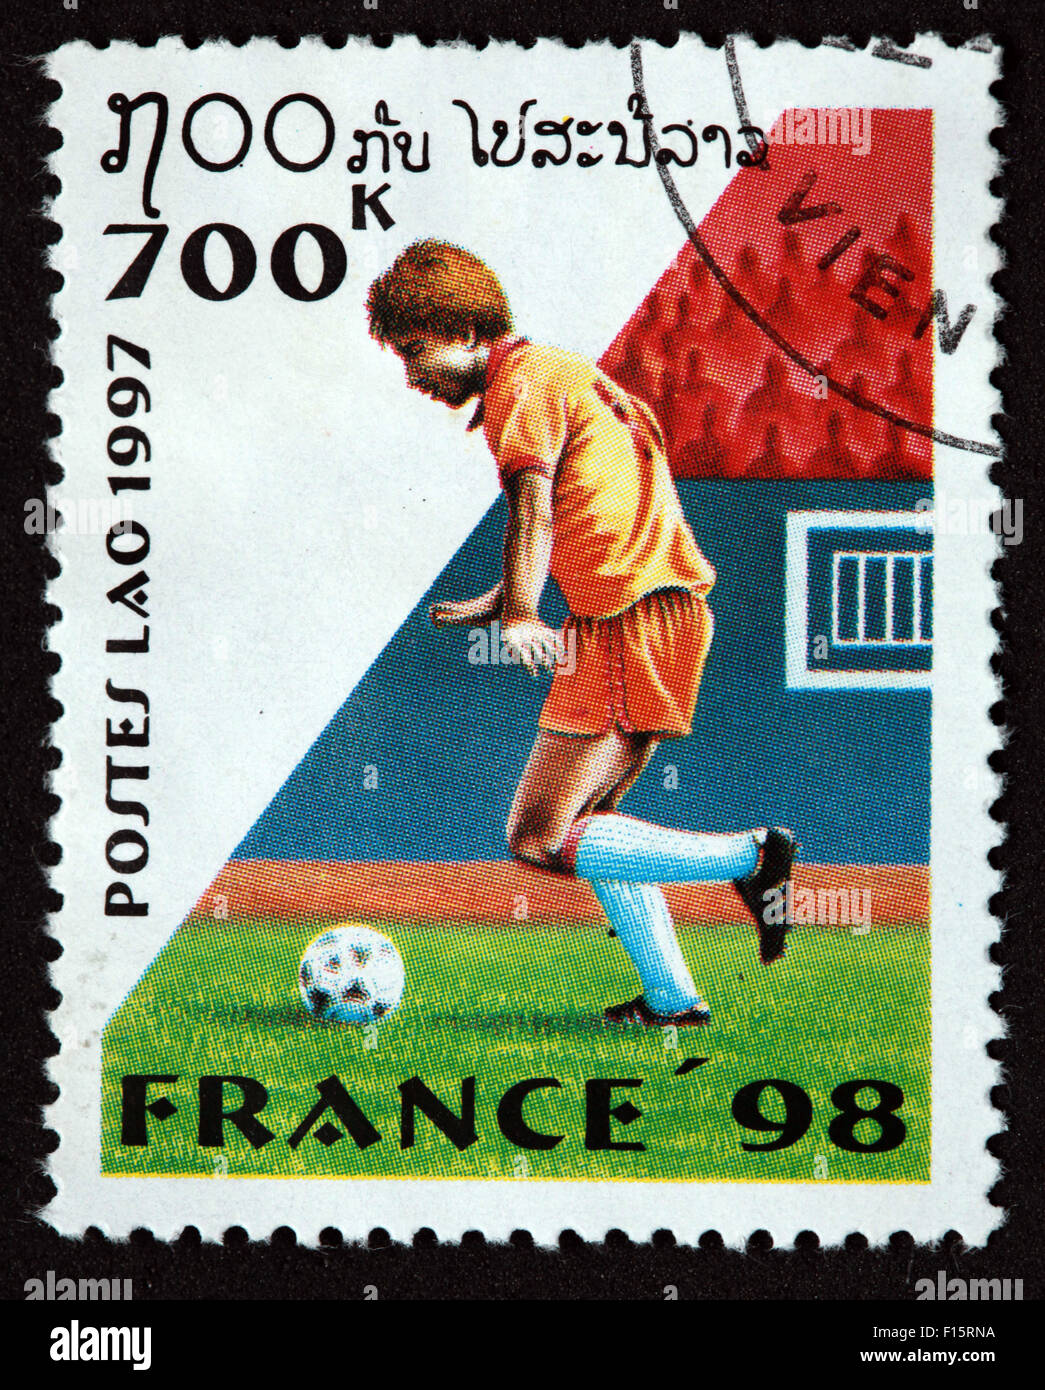 Postes Lao Laos 700K France 1998 98 football deportes world Cup worldcup sport stamp - Stock Image